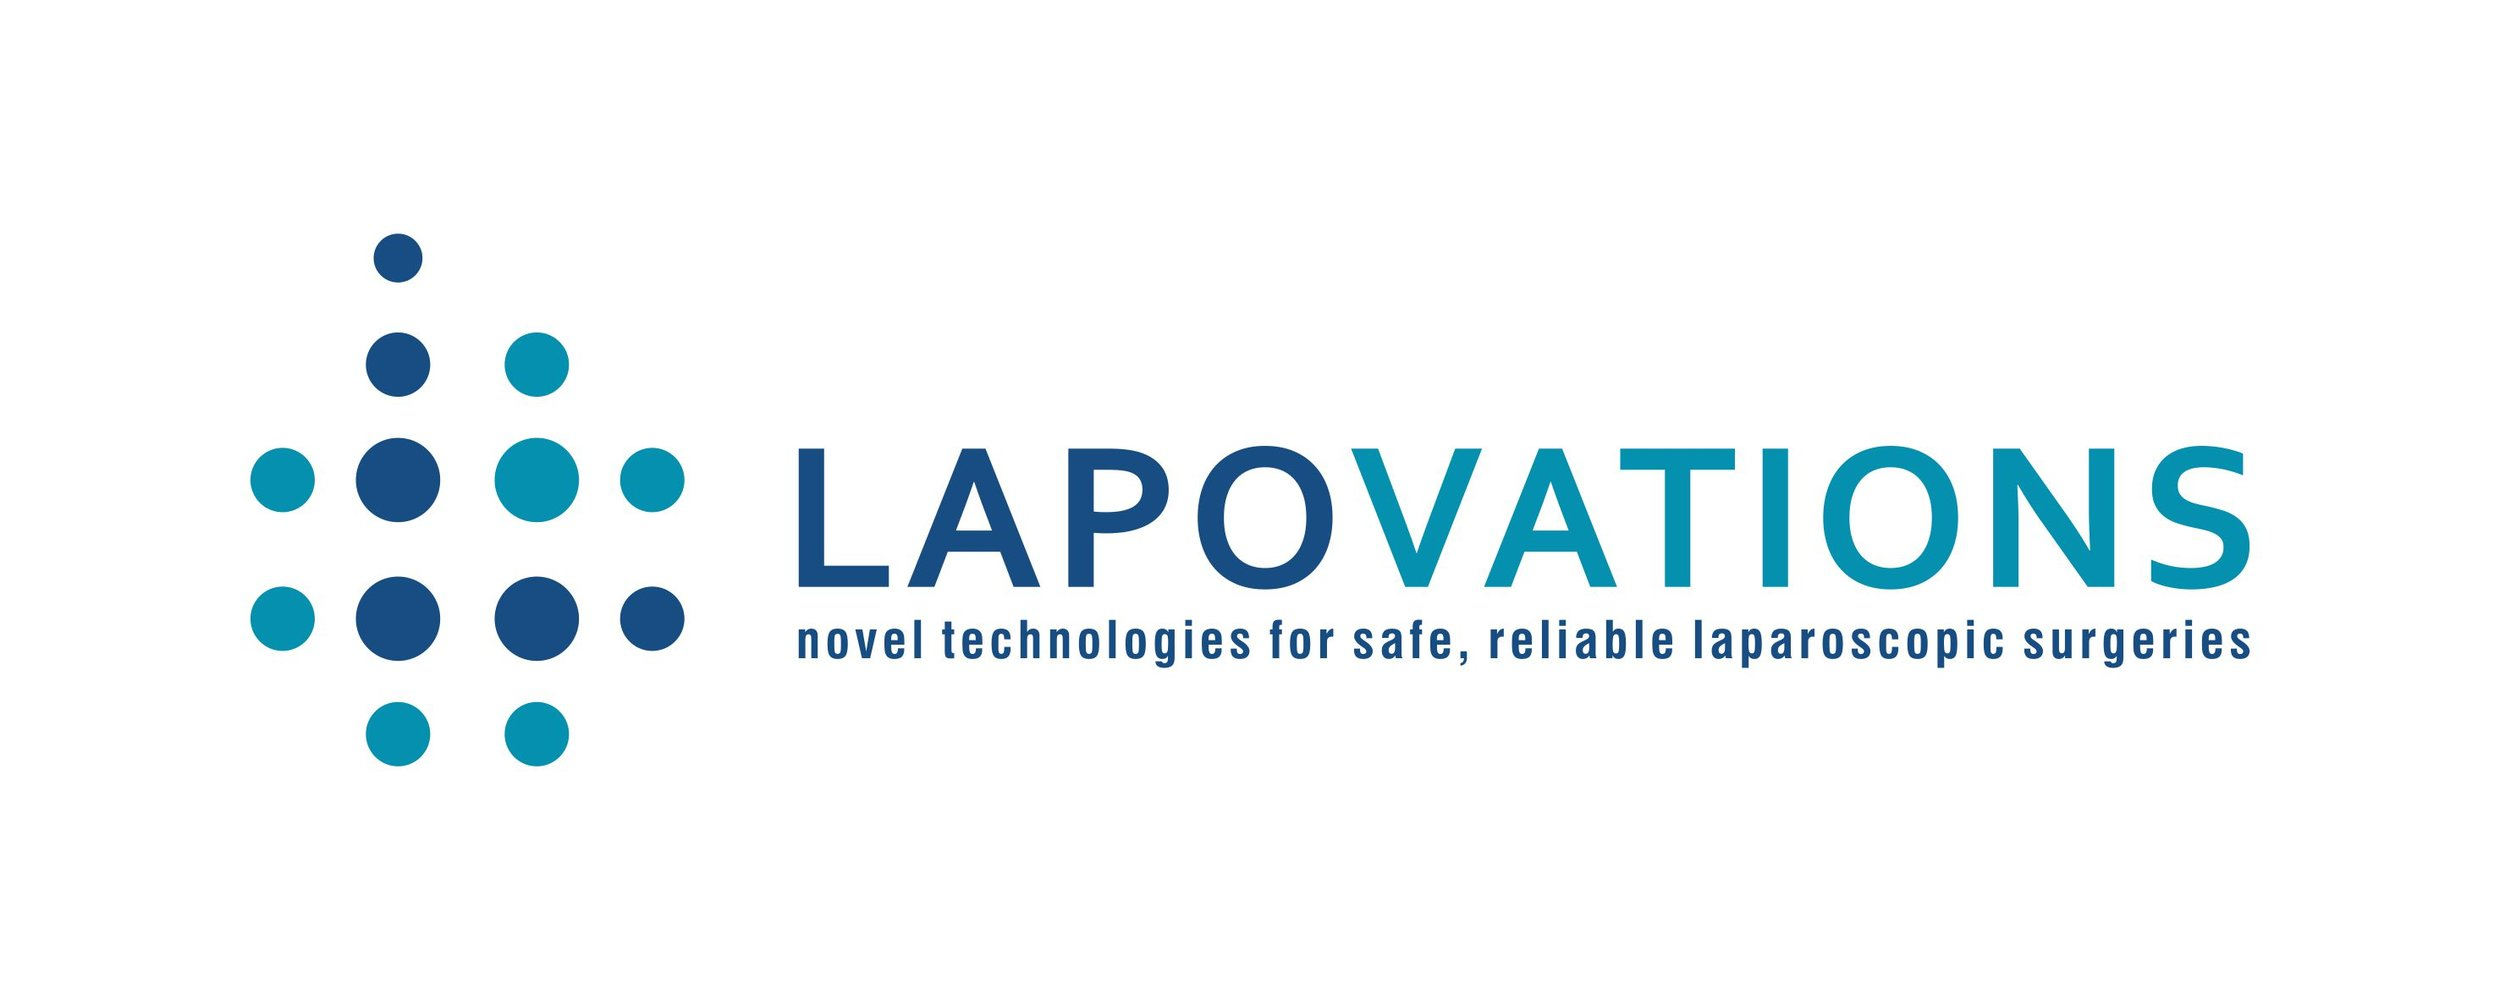 Lapovations logo.jpg